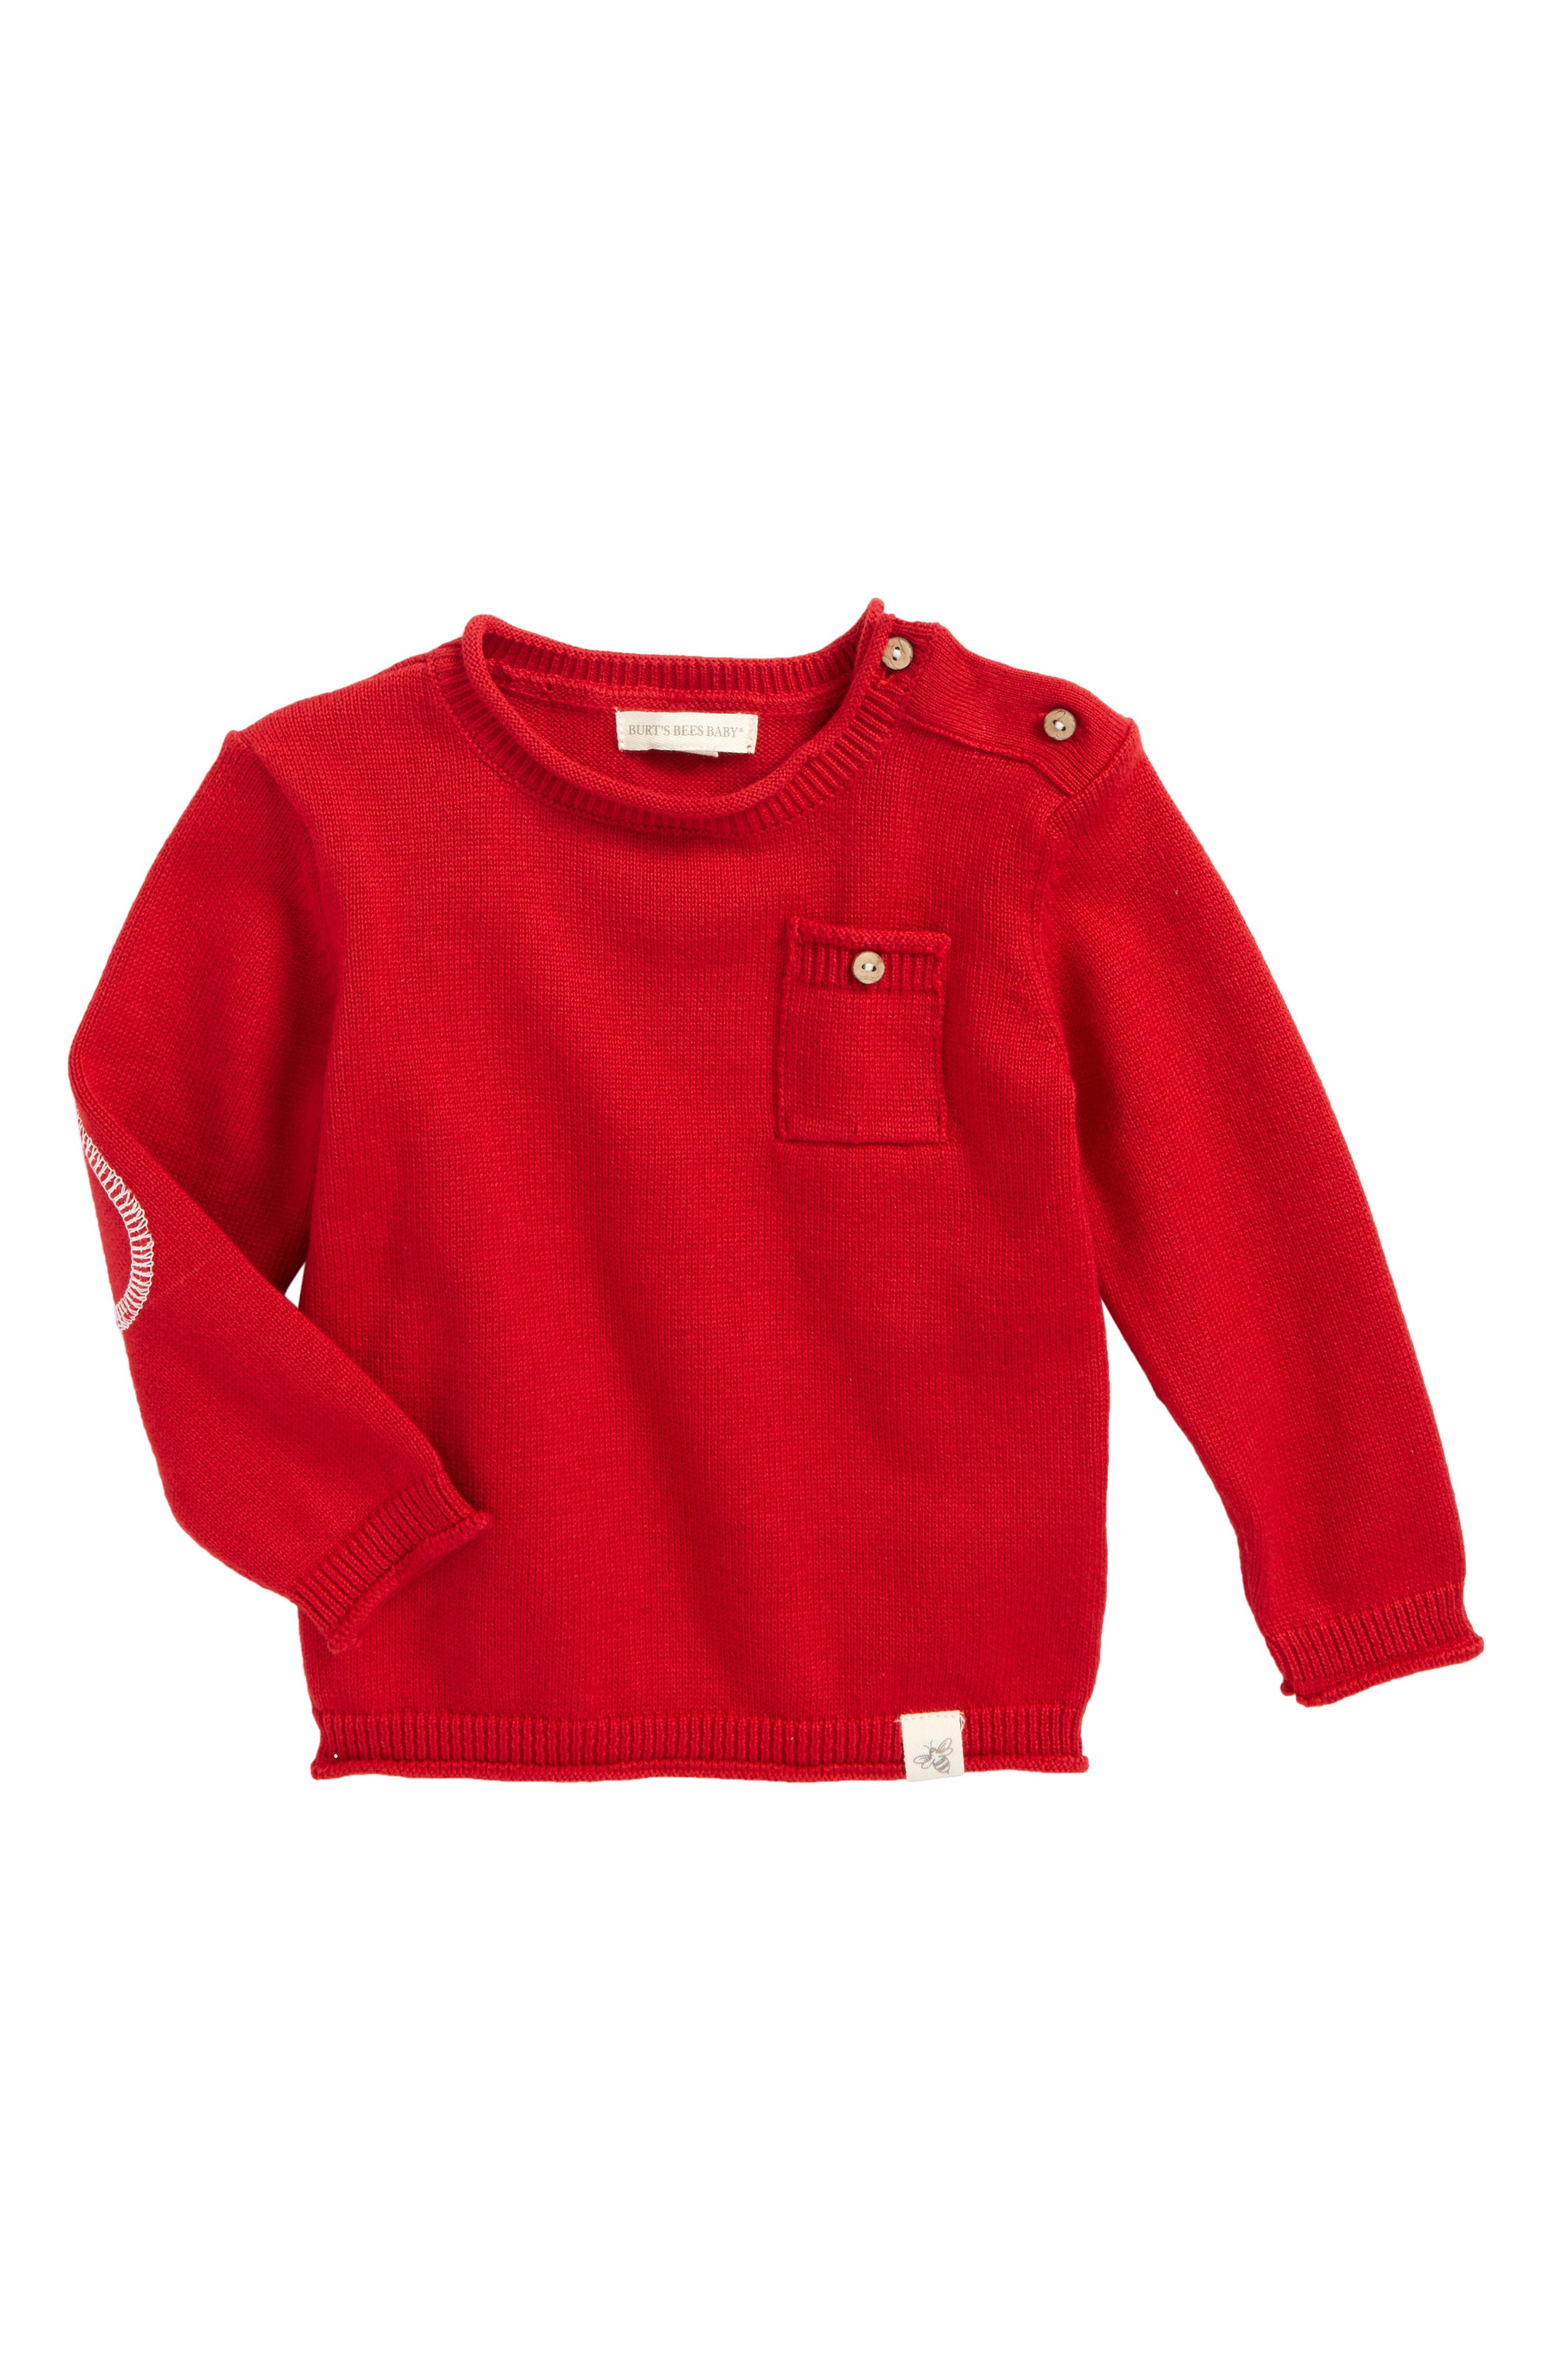 Alternate Image 1 Selected - Burt's Bees Baby Pocket Organic Cotton Sweater (Baby Boys)